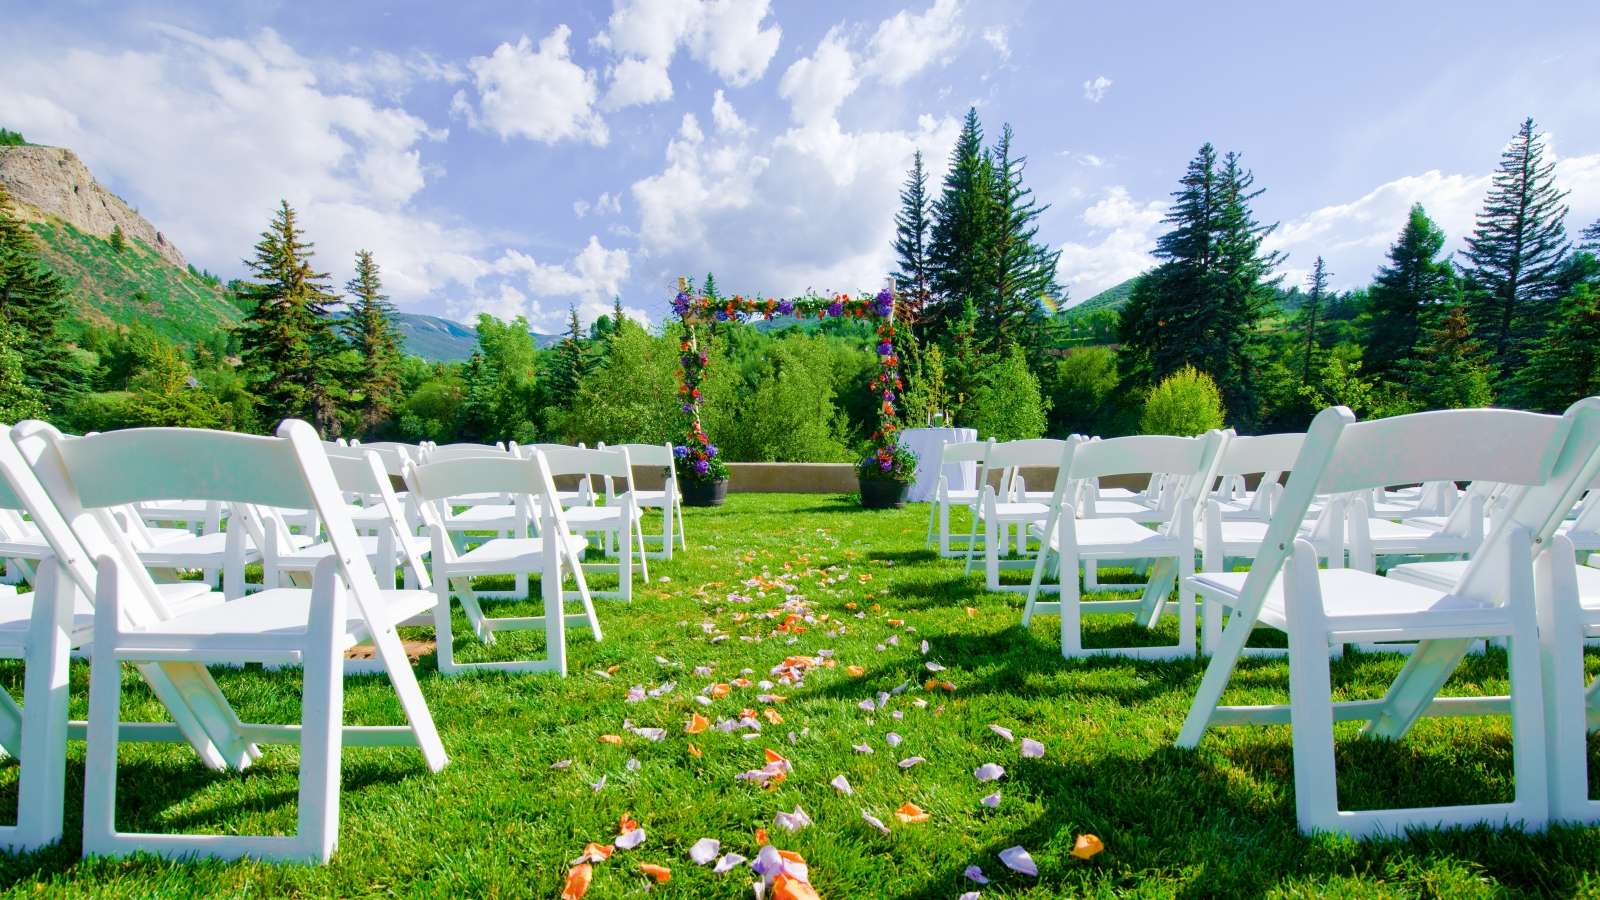 The Westin Riverfront Resort & Spa, Avon, Vail Vailley - Weddings